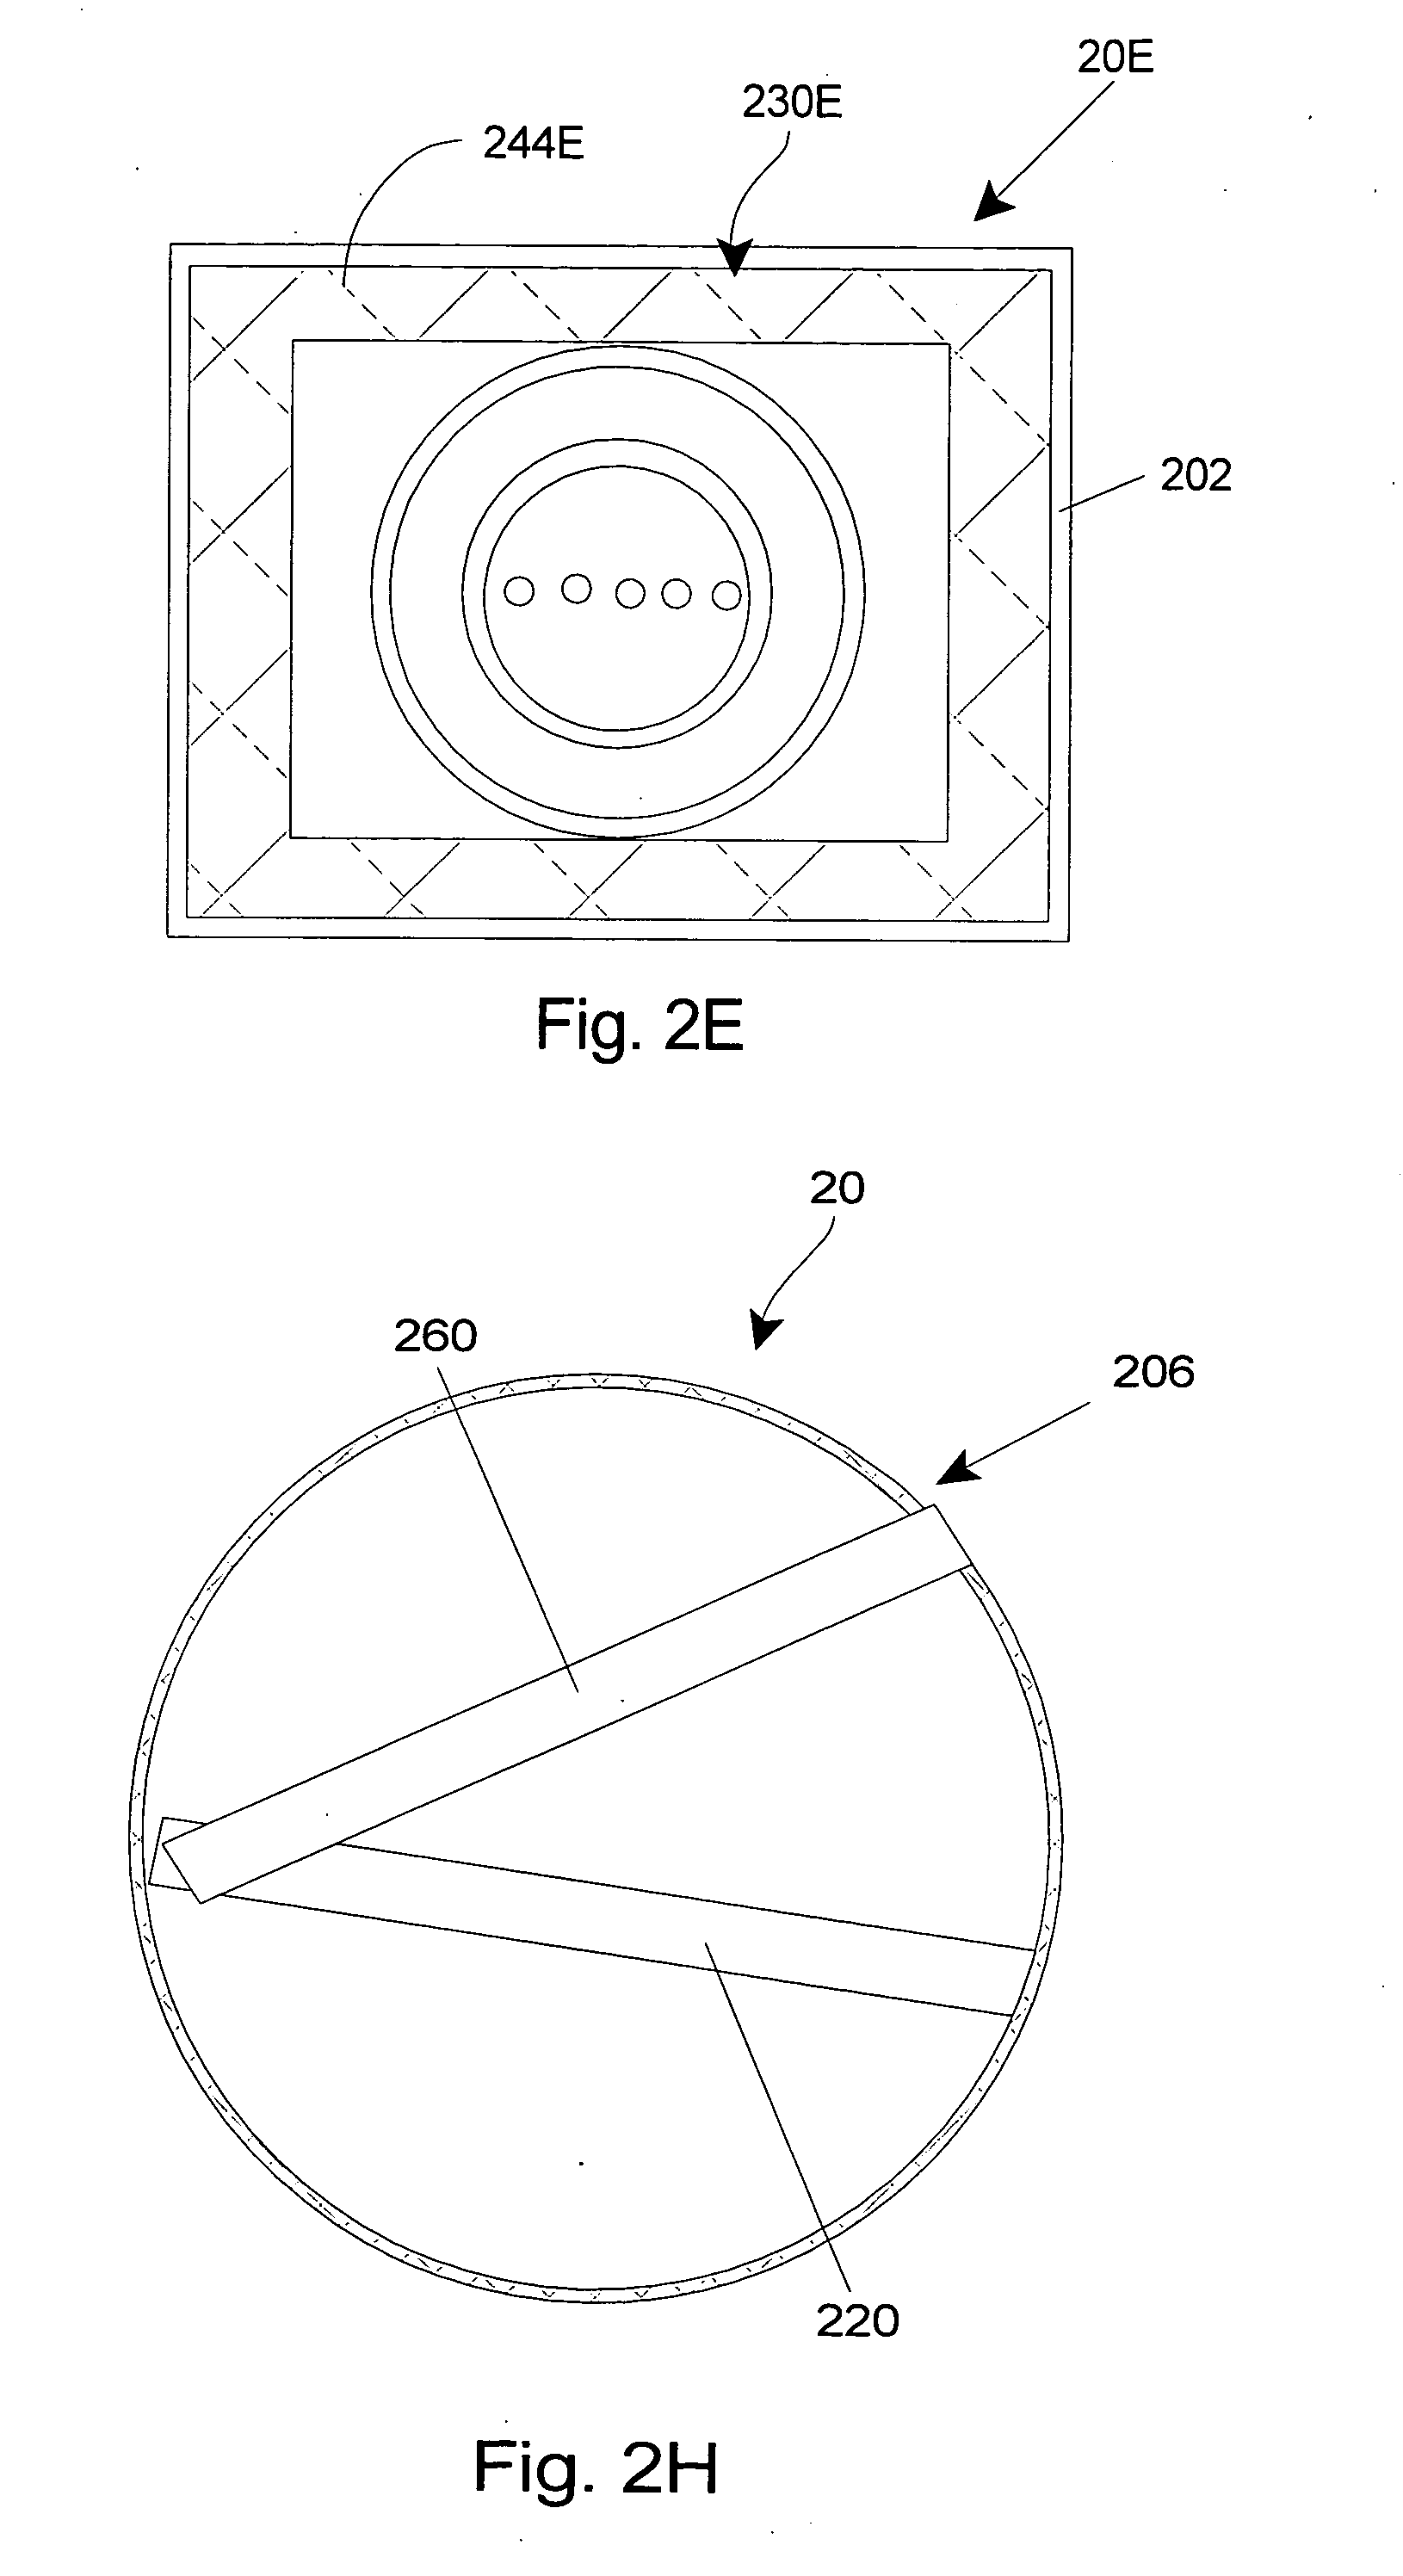 Patent Us20050156068 System And Method For Communicating Data In Ac Wiring Diagram 230e 1986 Circuit Drawing